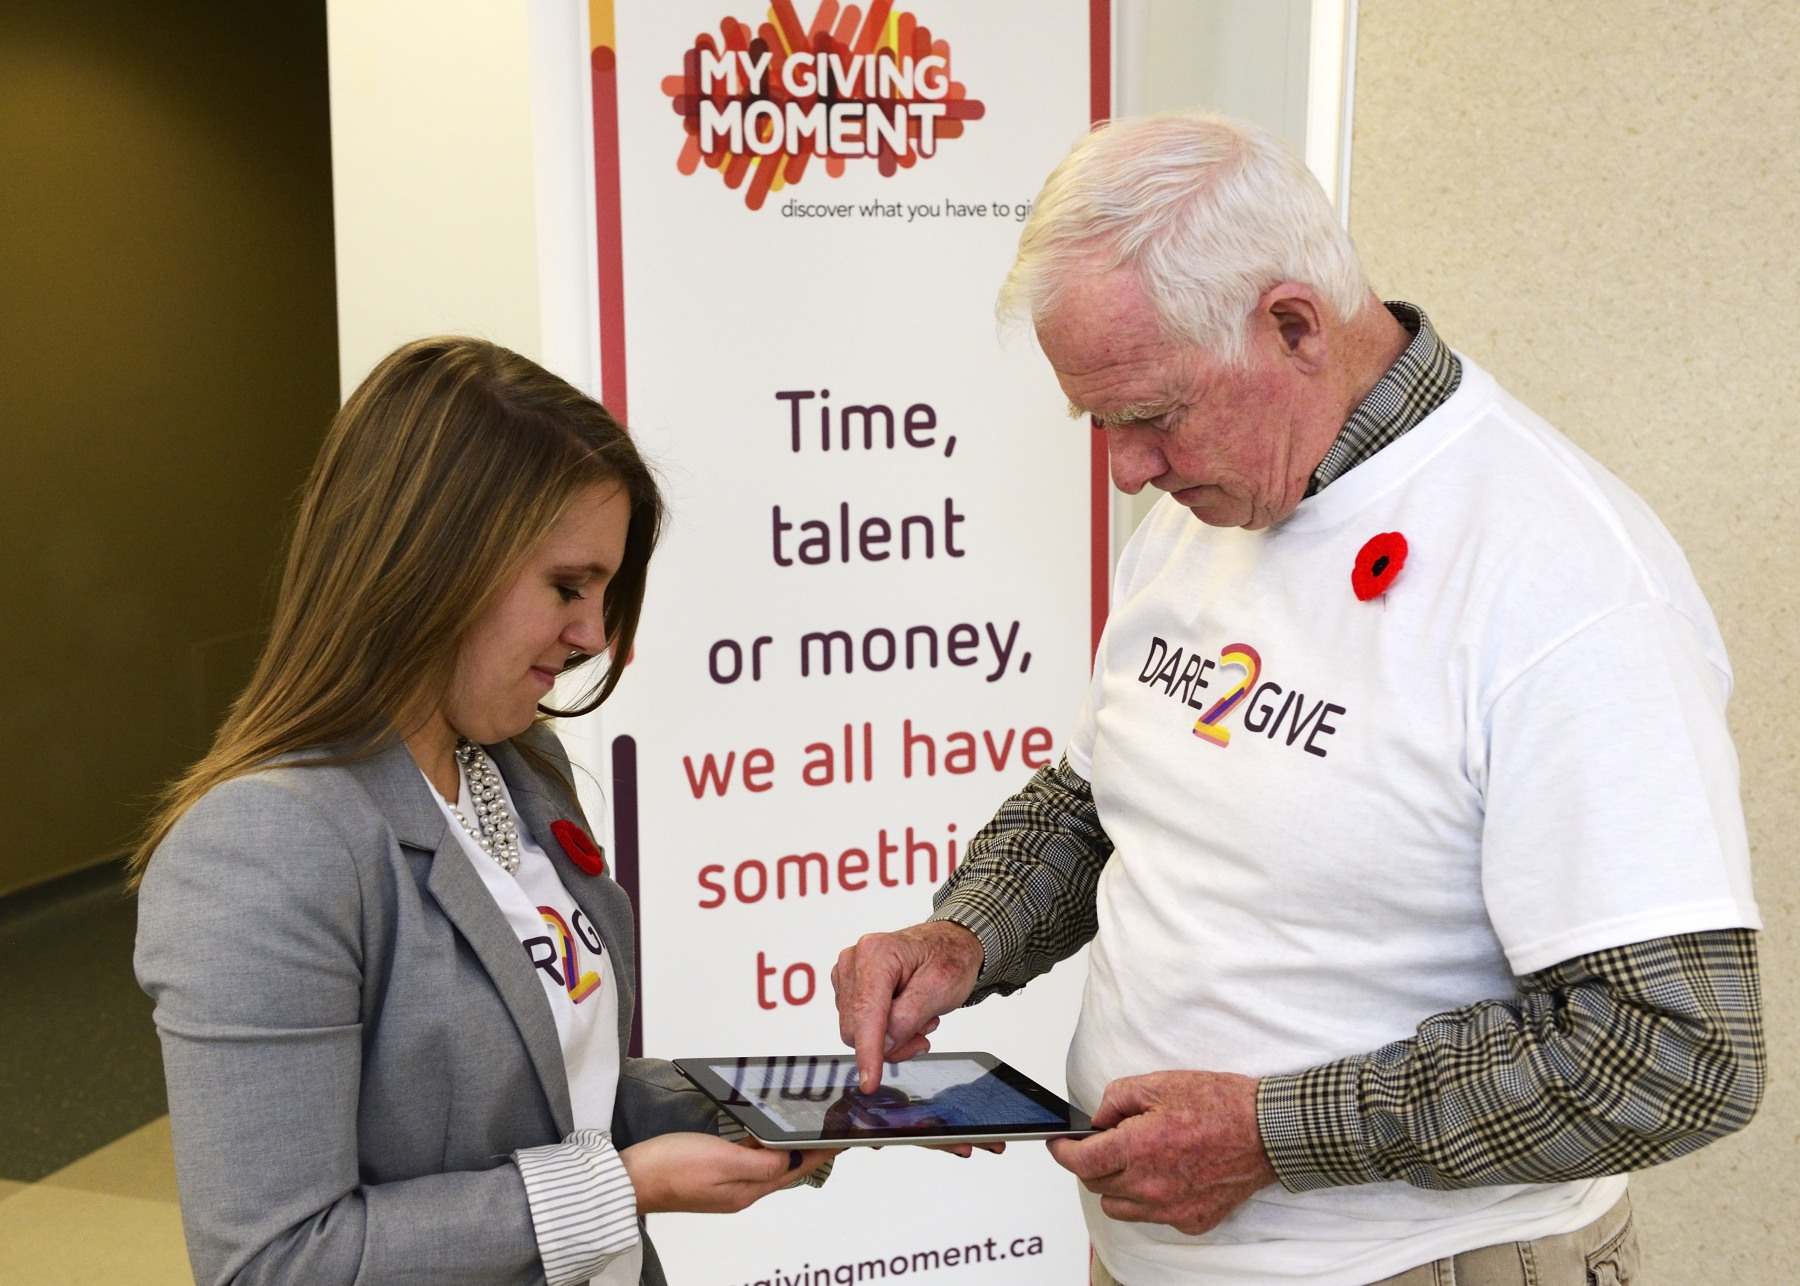 During the event, the Governor General challenged 23 people and submitted his number on www.mygivingmoment.ca.